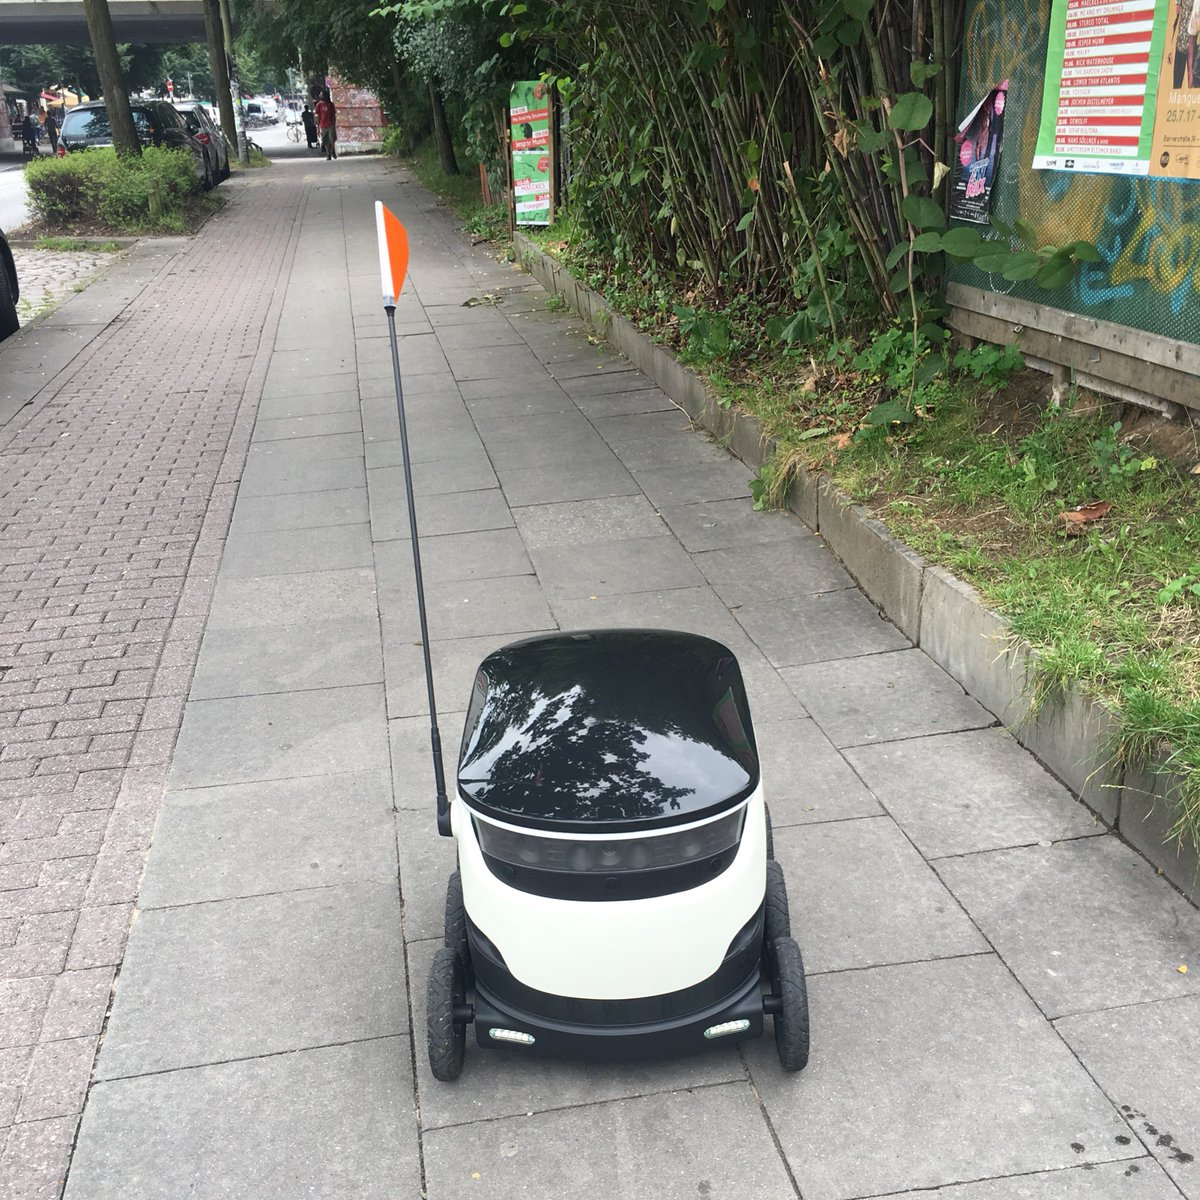 Met my first courier robot today in #Hamburg. He was really friendly, paused for a picture and delivered a burger successfully. Hi! <br>http://pic.twitter.com/NYTeQ7eUXo